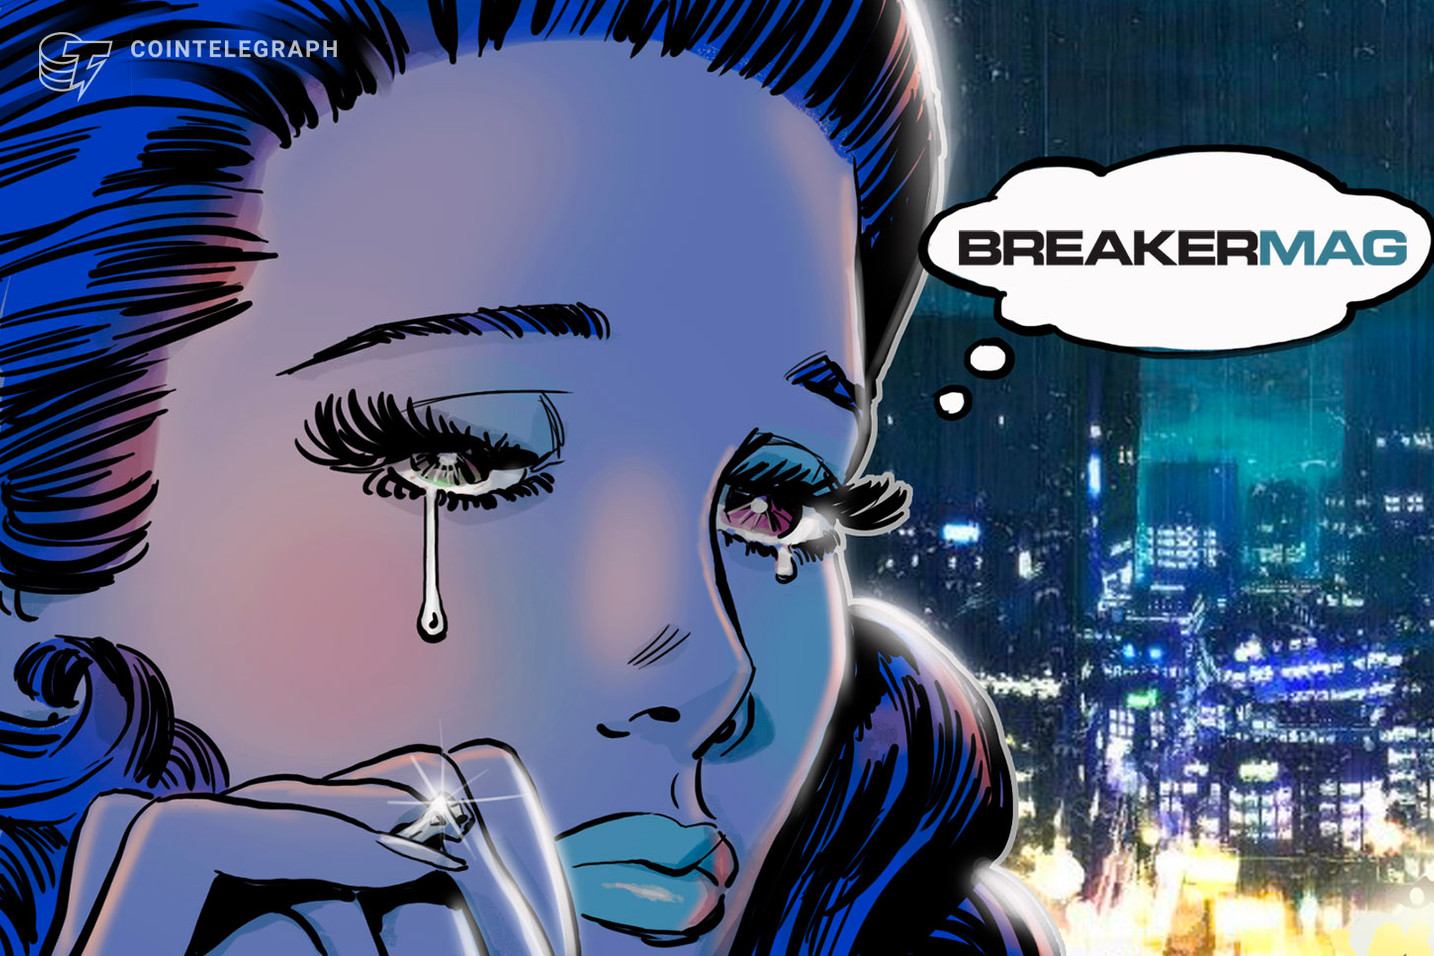 Breaker Magazine to Cease Operation Due to Lack of Feasible Business Plan: Report